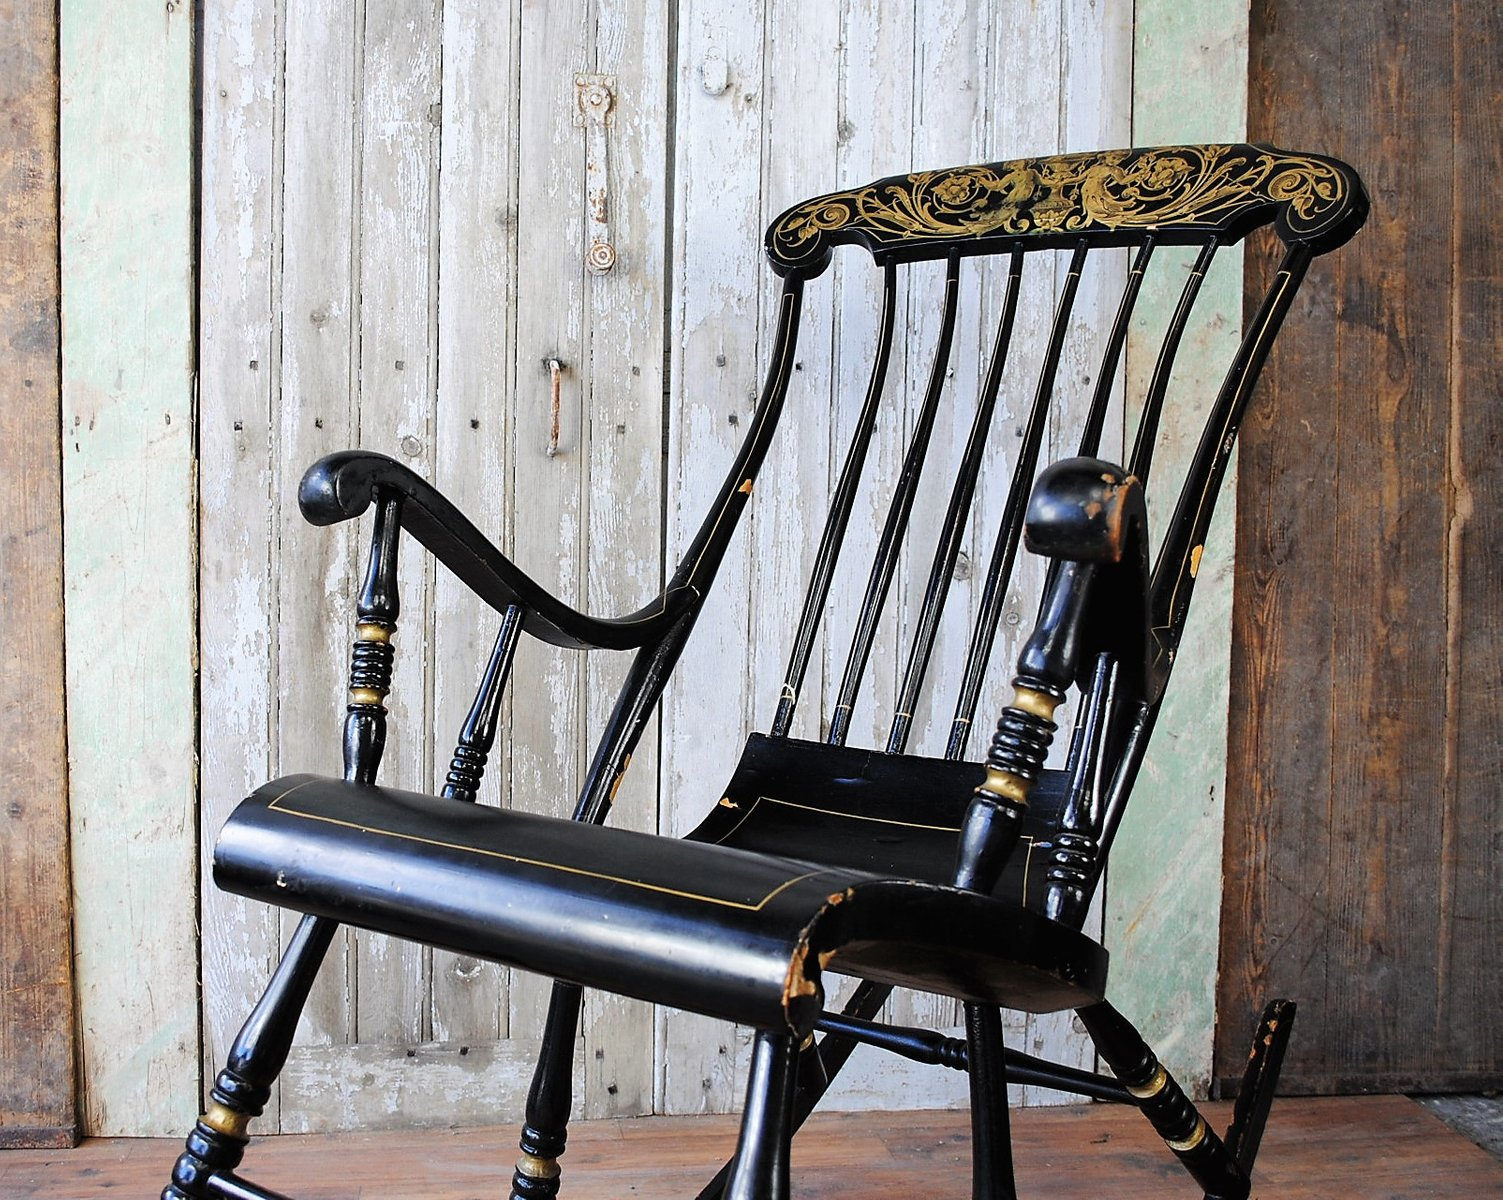 Swedish Rocking Chair Antique Swedish Rocking Chair 1850s For Sale At Pamono